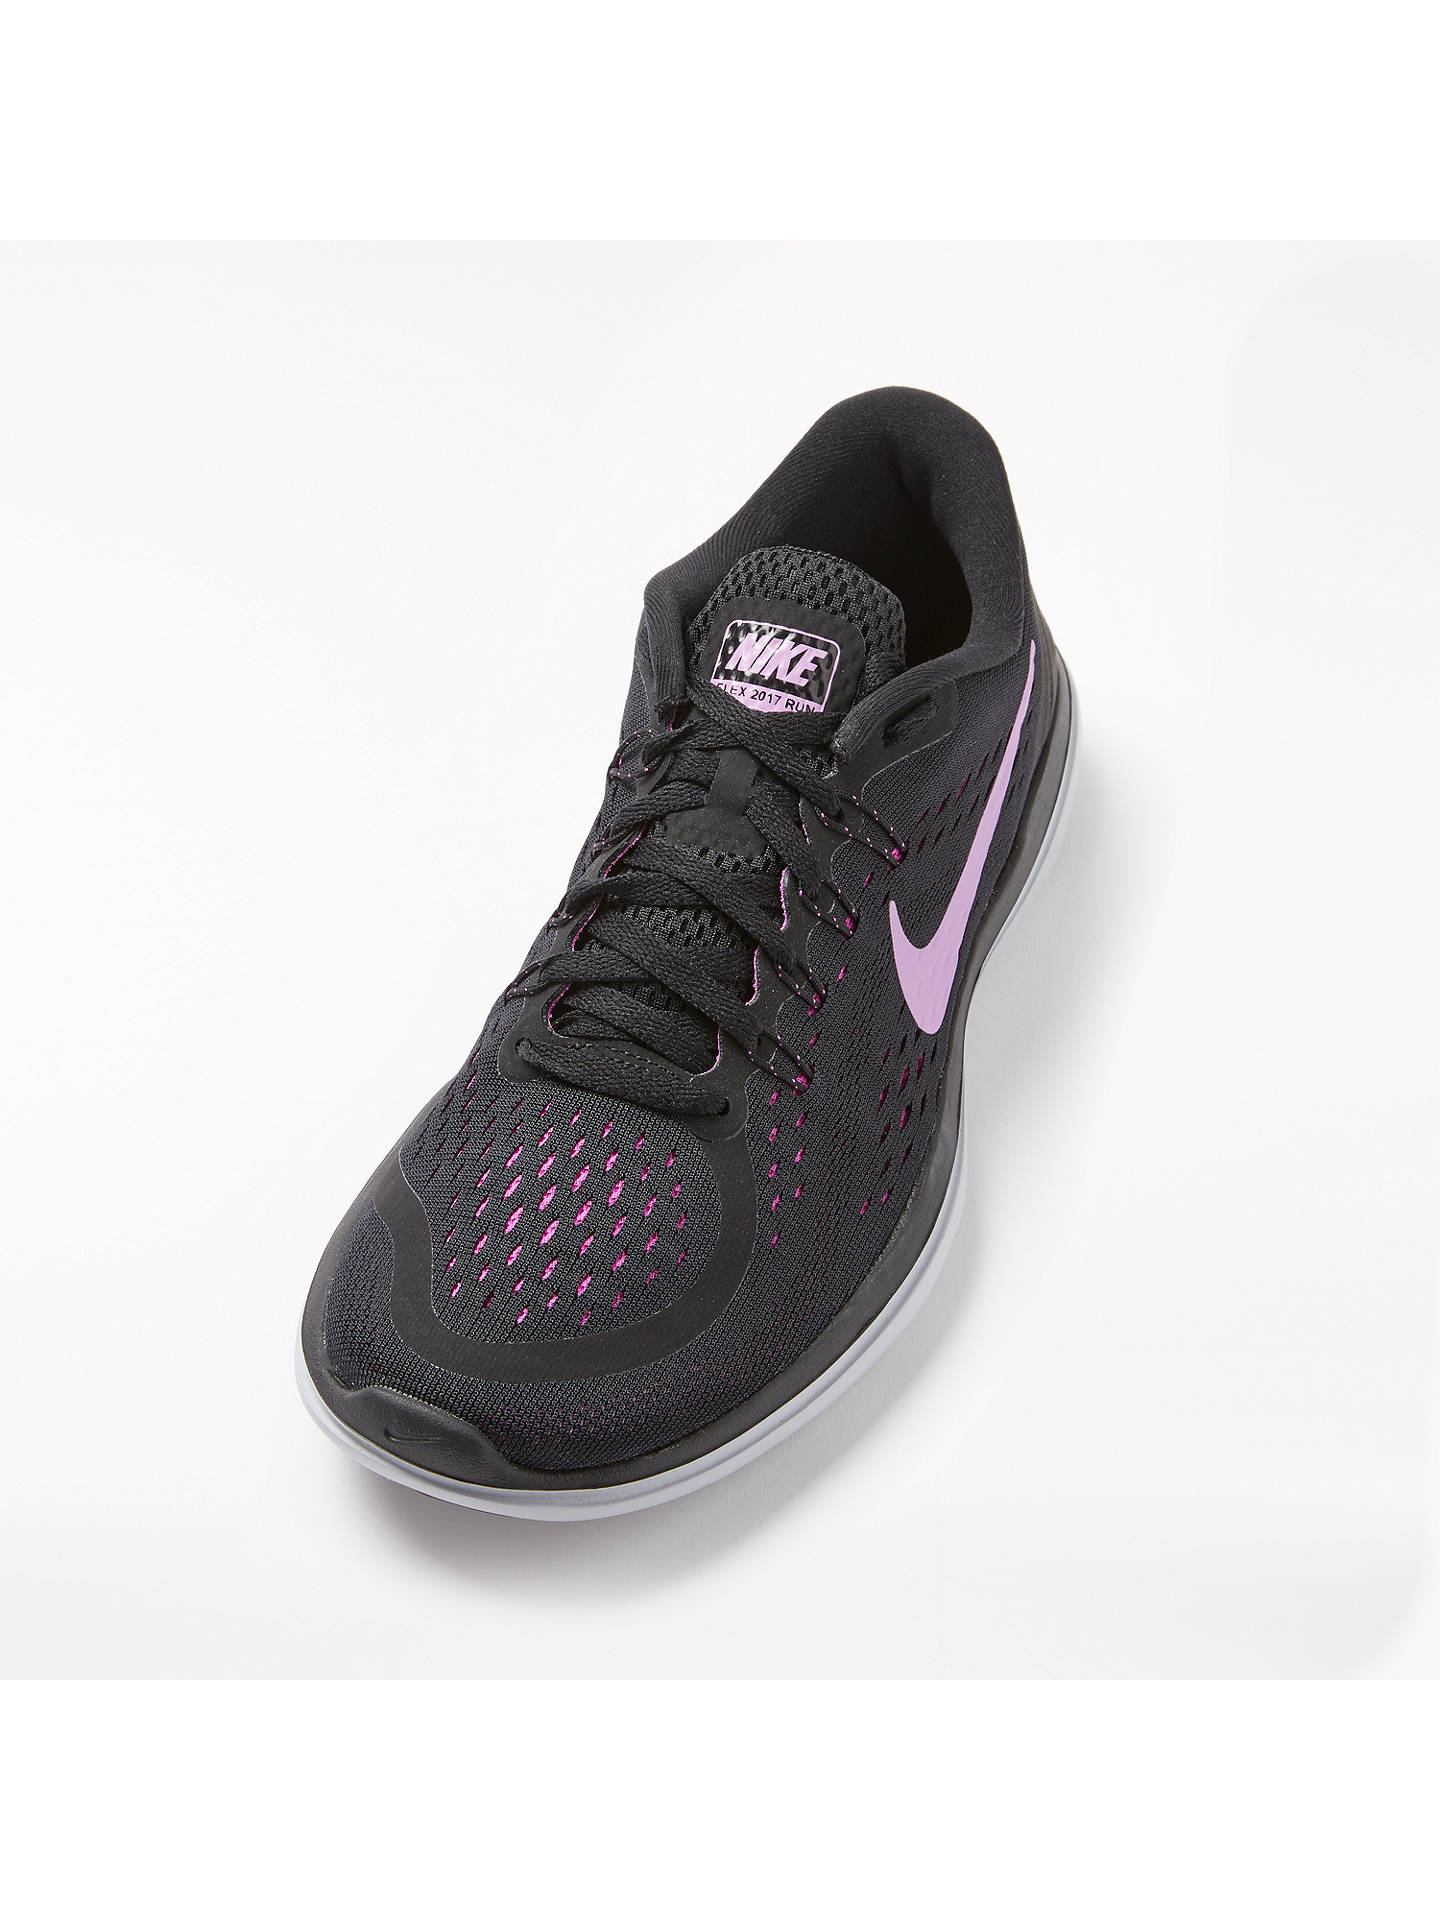 b4bc7d79c9cb Nike Flex 2017 RN Women s Running Shoes at John Lewis   Partners